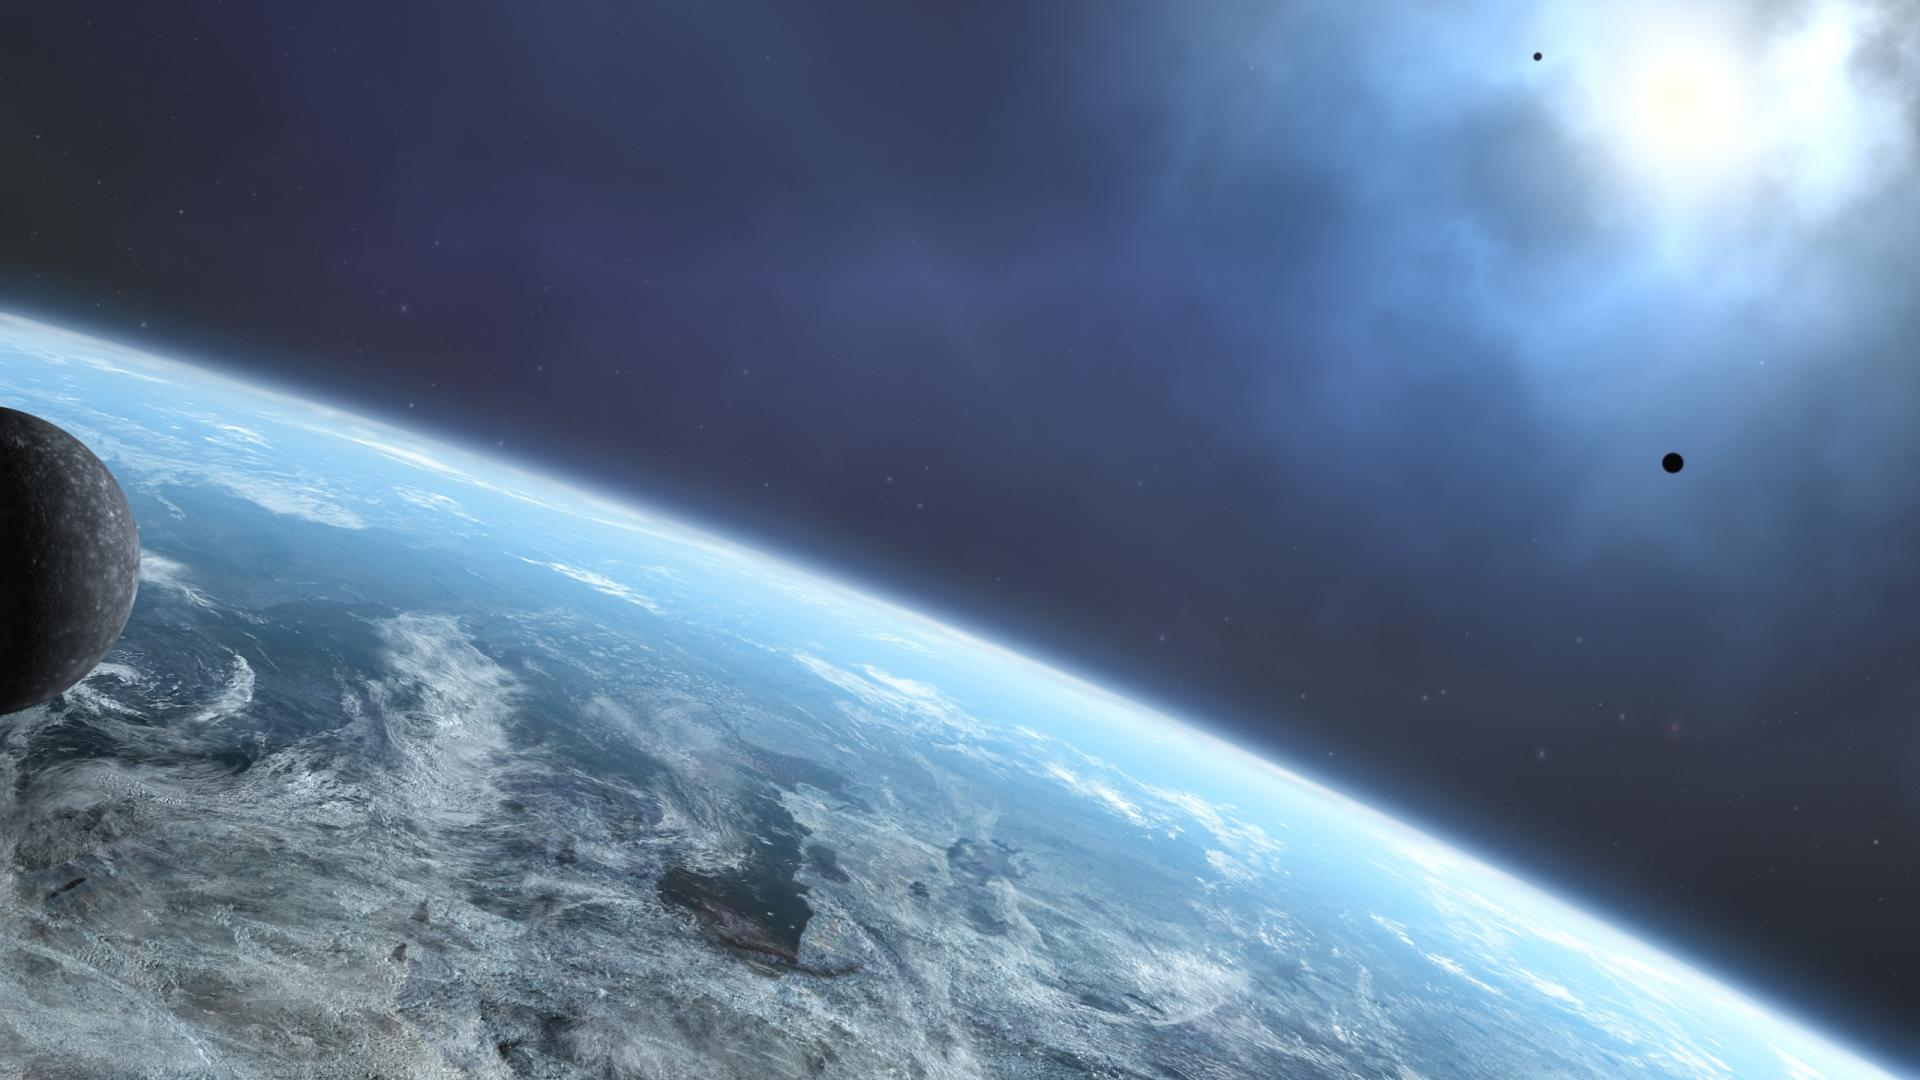 Earth From Space Wallpaper 1920x1080